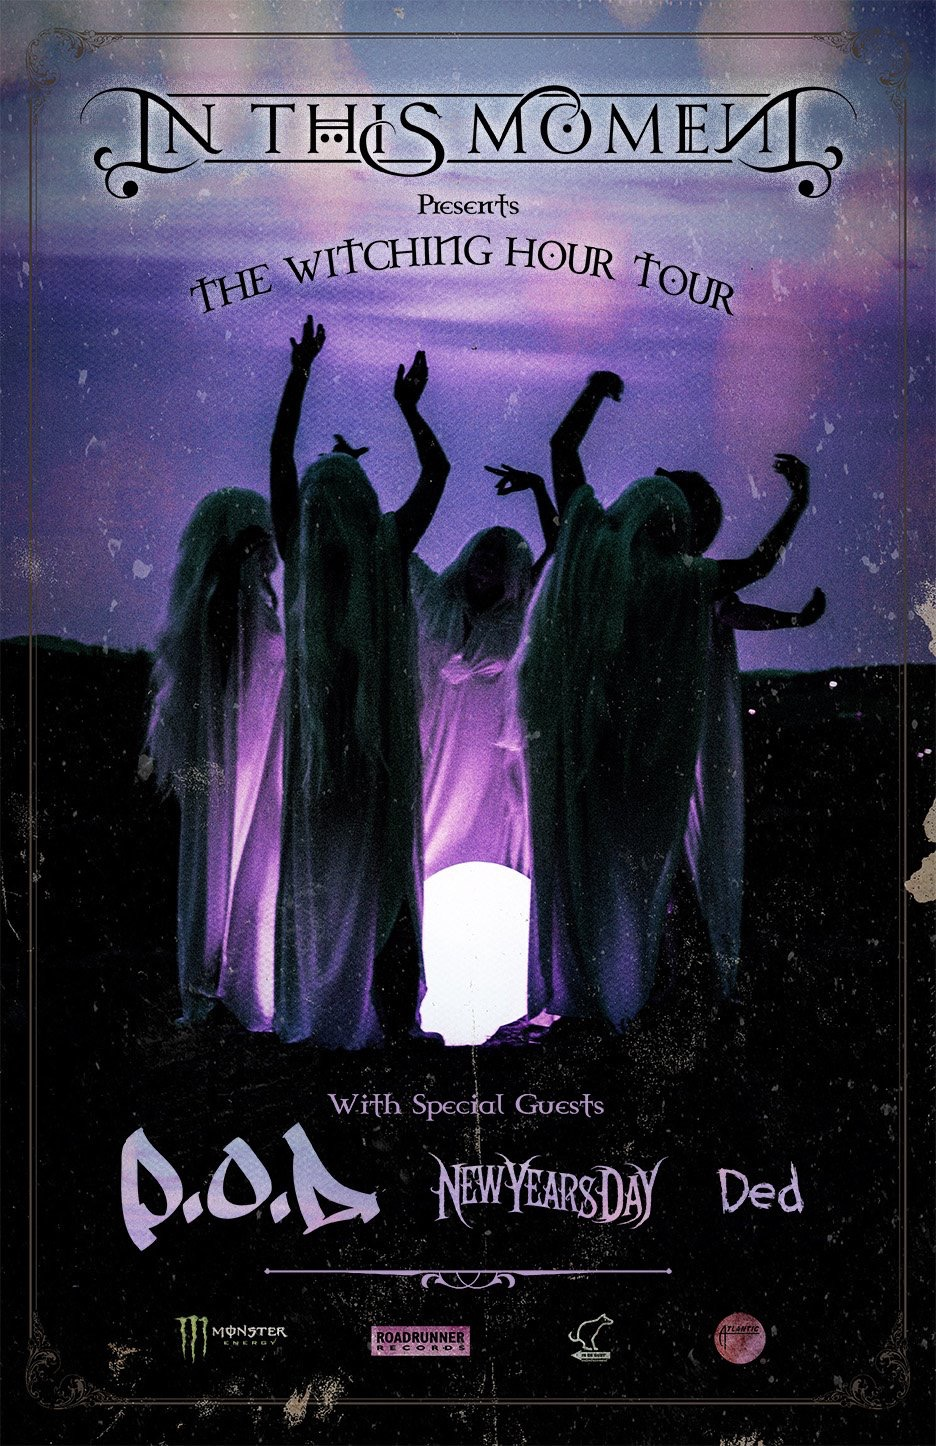 The Witching Hour Tour